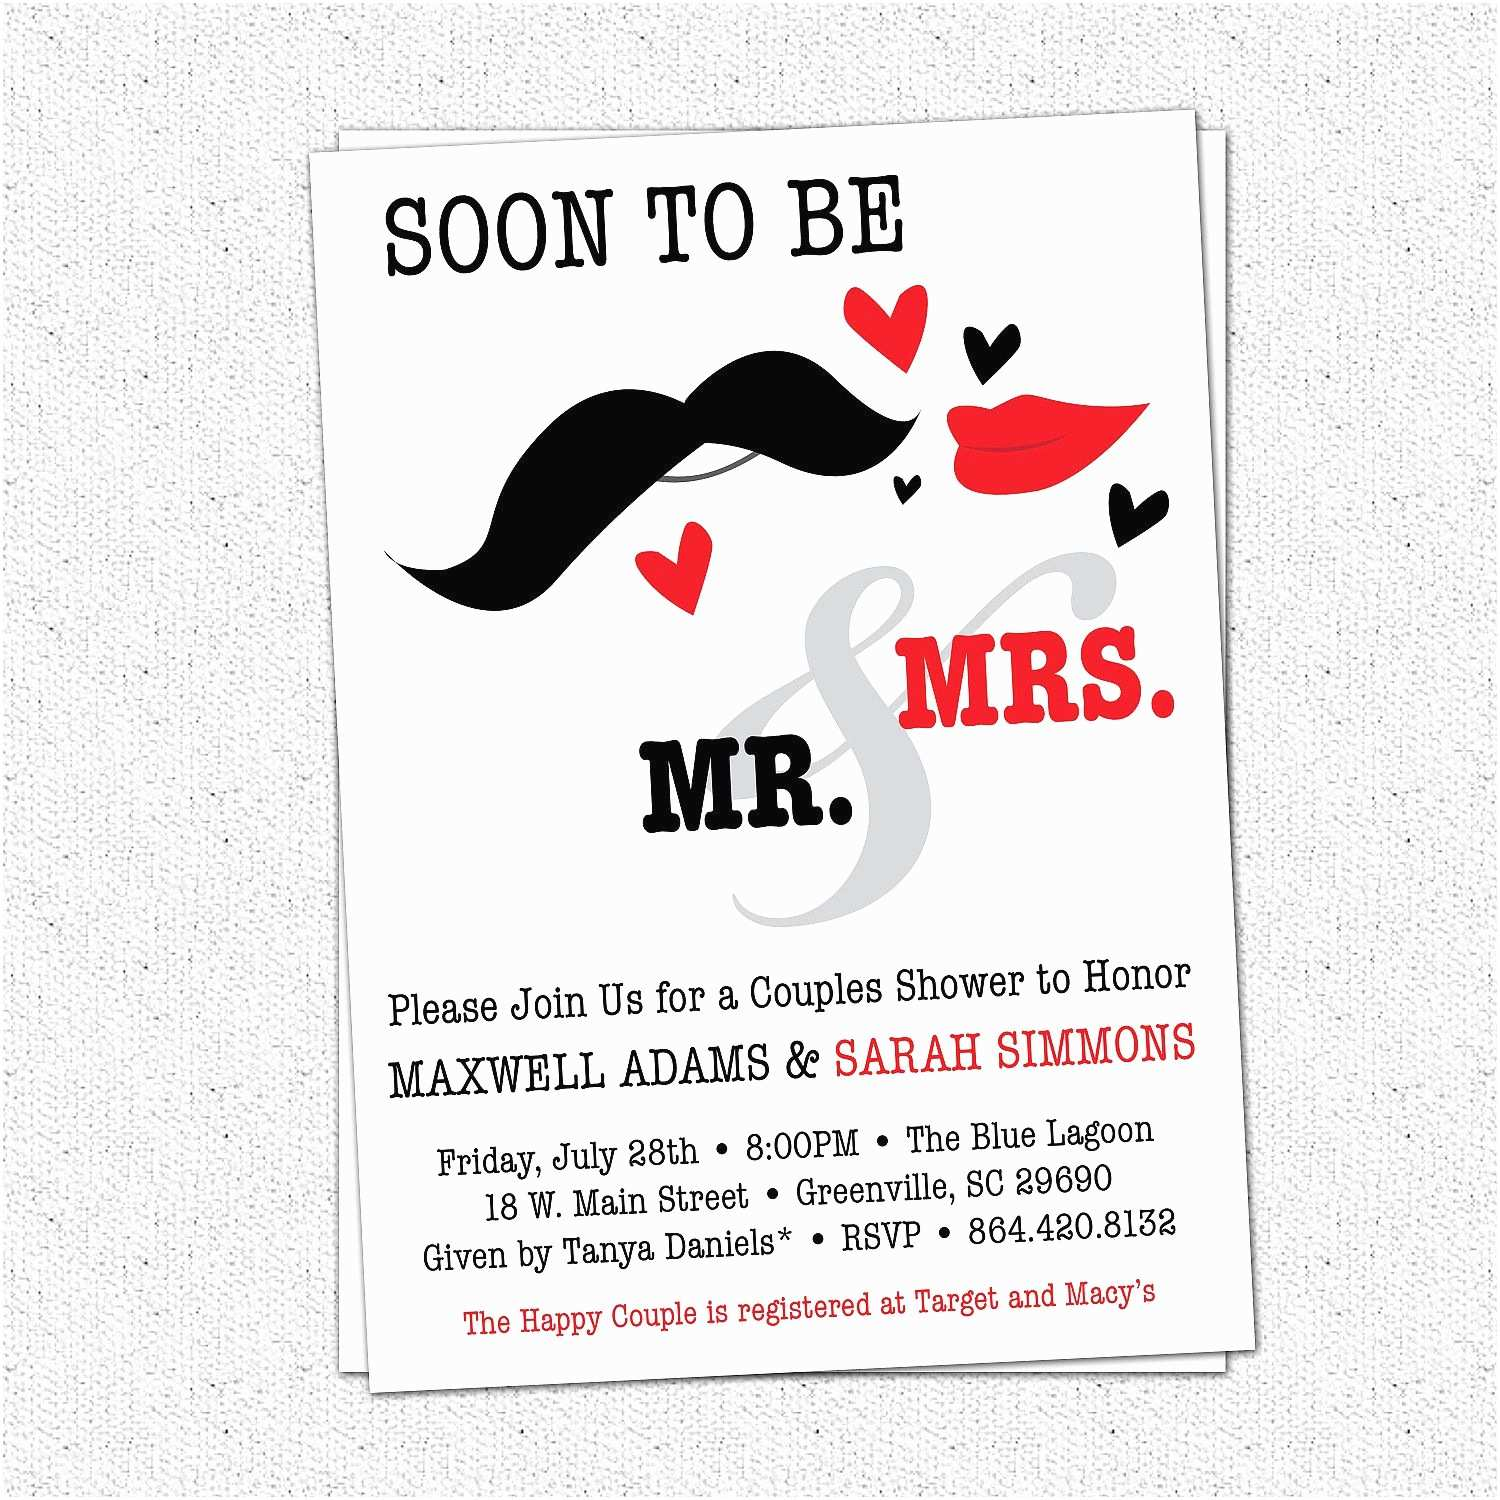 Couples Wedding Shower Invitations Templates Free Bridal Shower Couples Wedding Shower Invitations Card